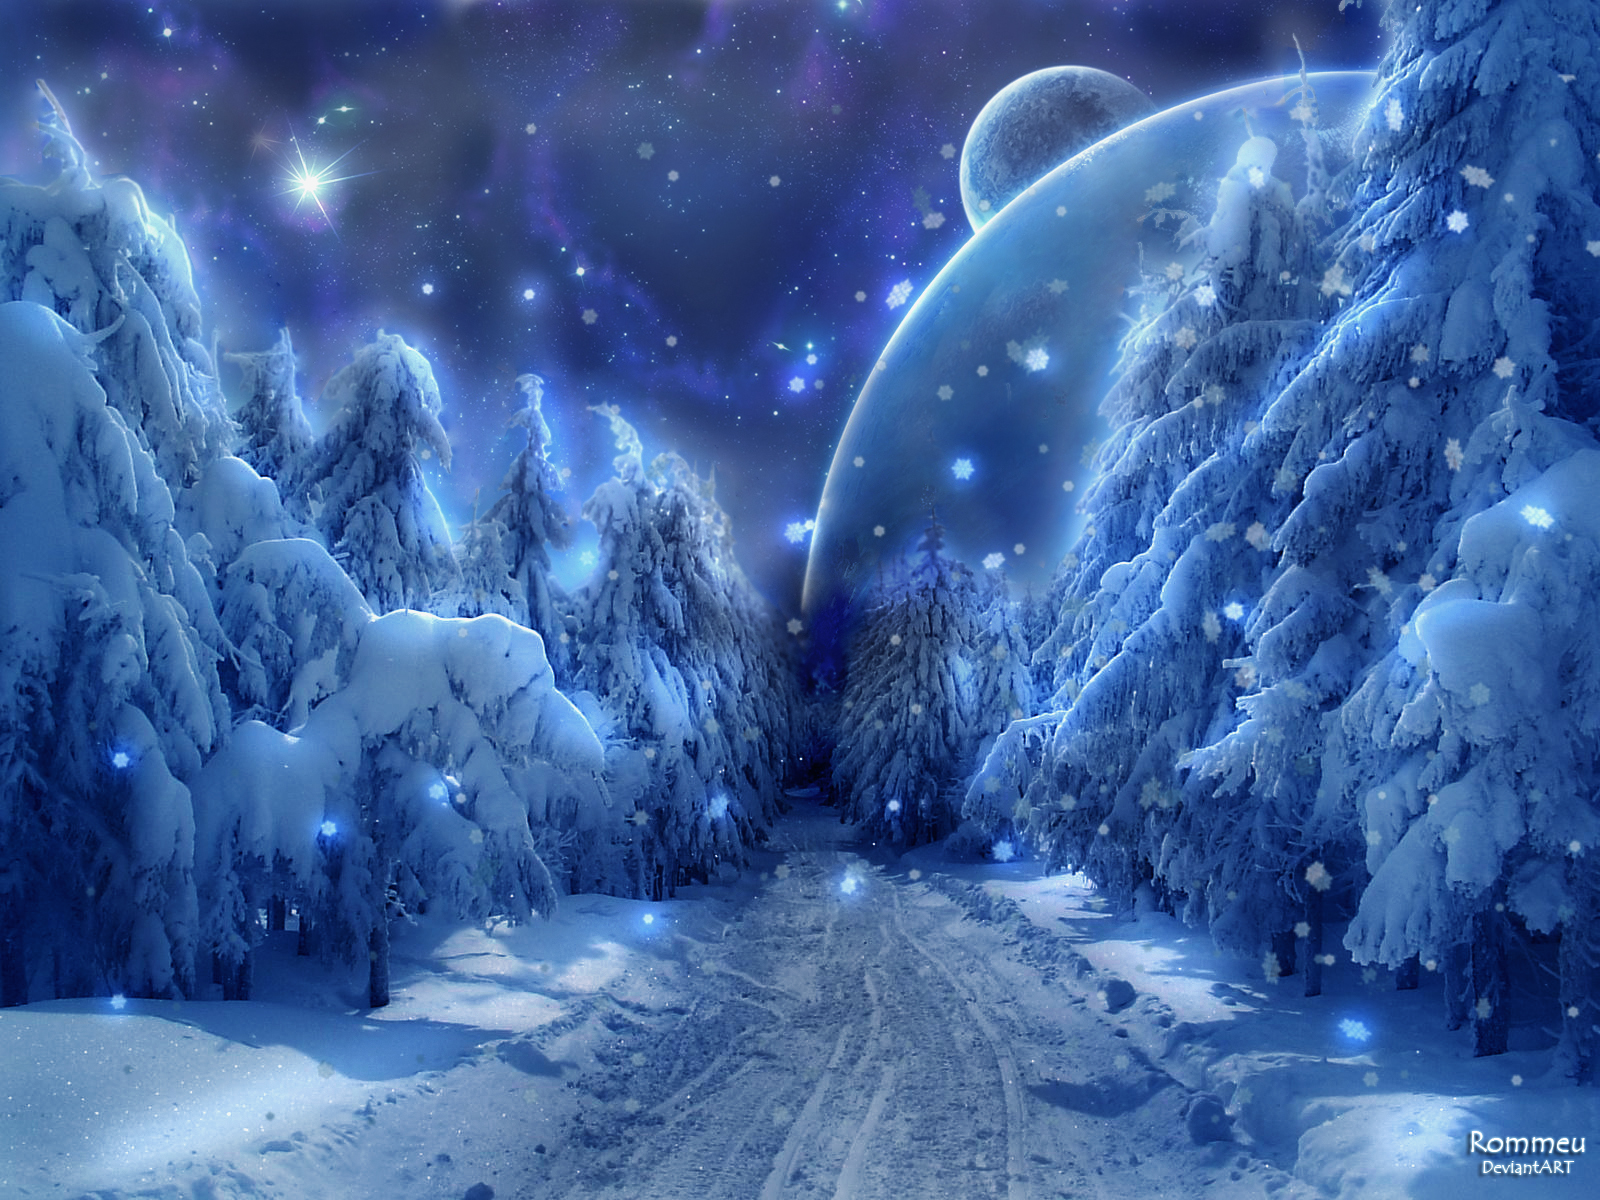 Download Winter Snow Wallpaper 1600x1200 Wallpoper 393934 1600x1200